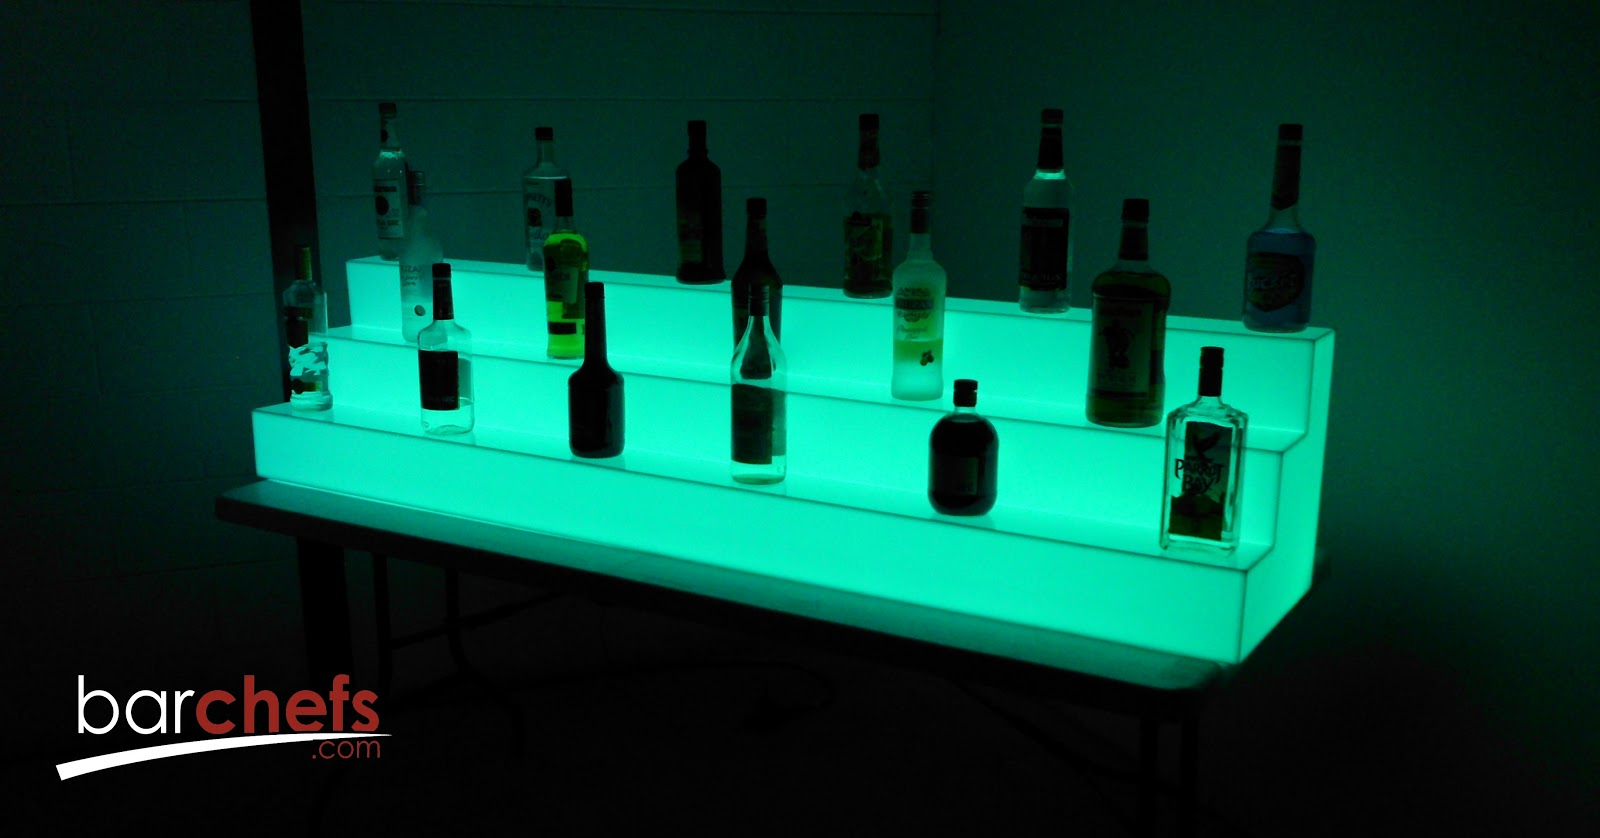 BarChefs: Light Up Bar Shelves help to increase Alcohole Sales